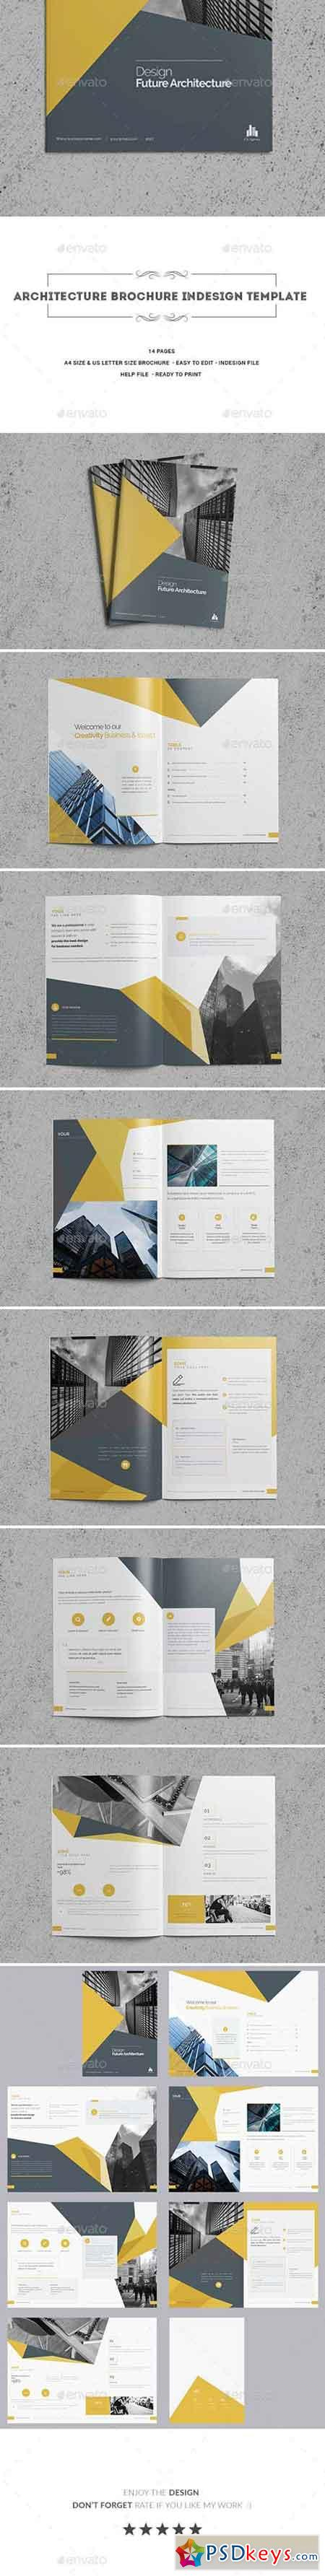 Architecture Brochure Indesign Template 20094740